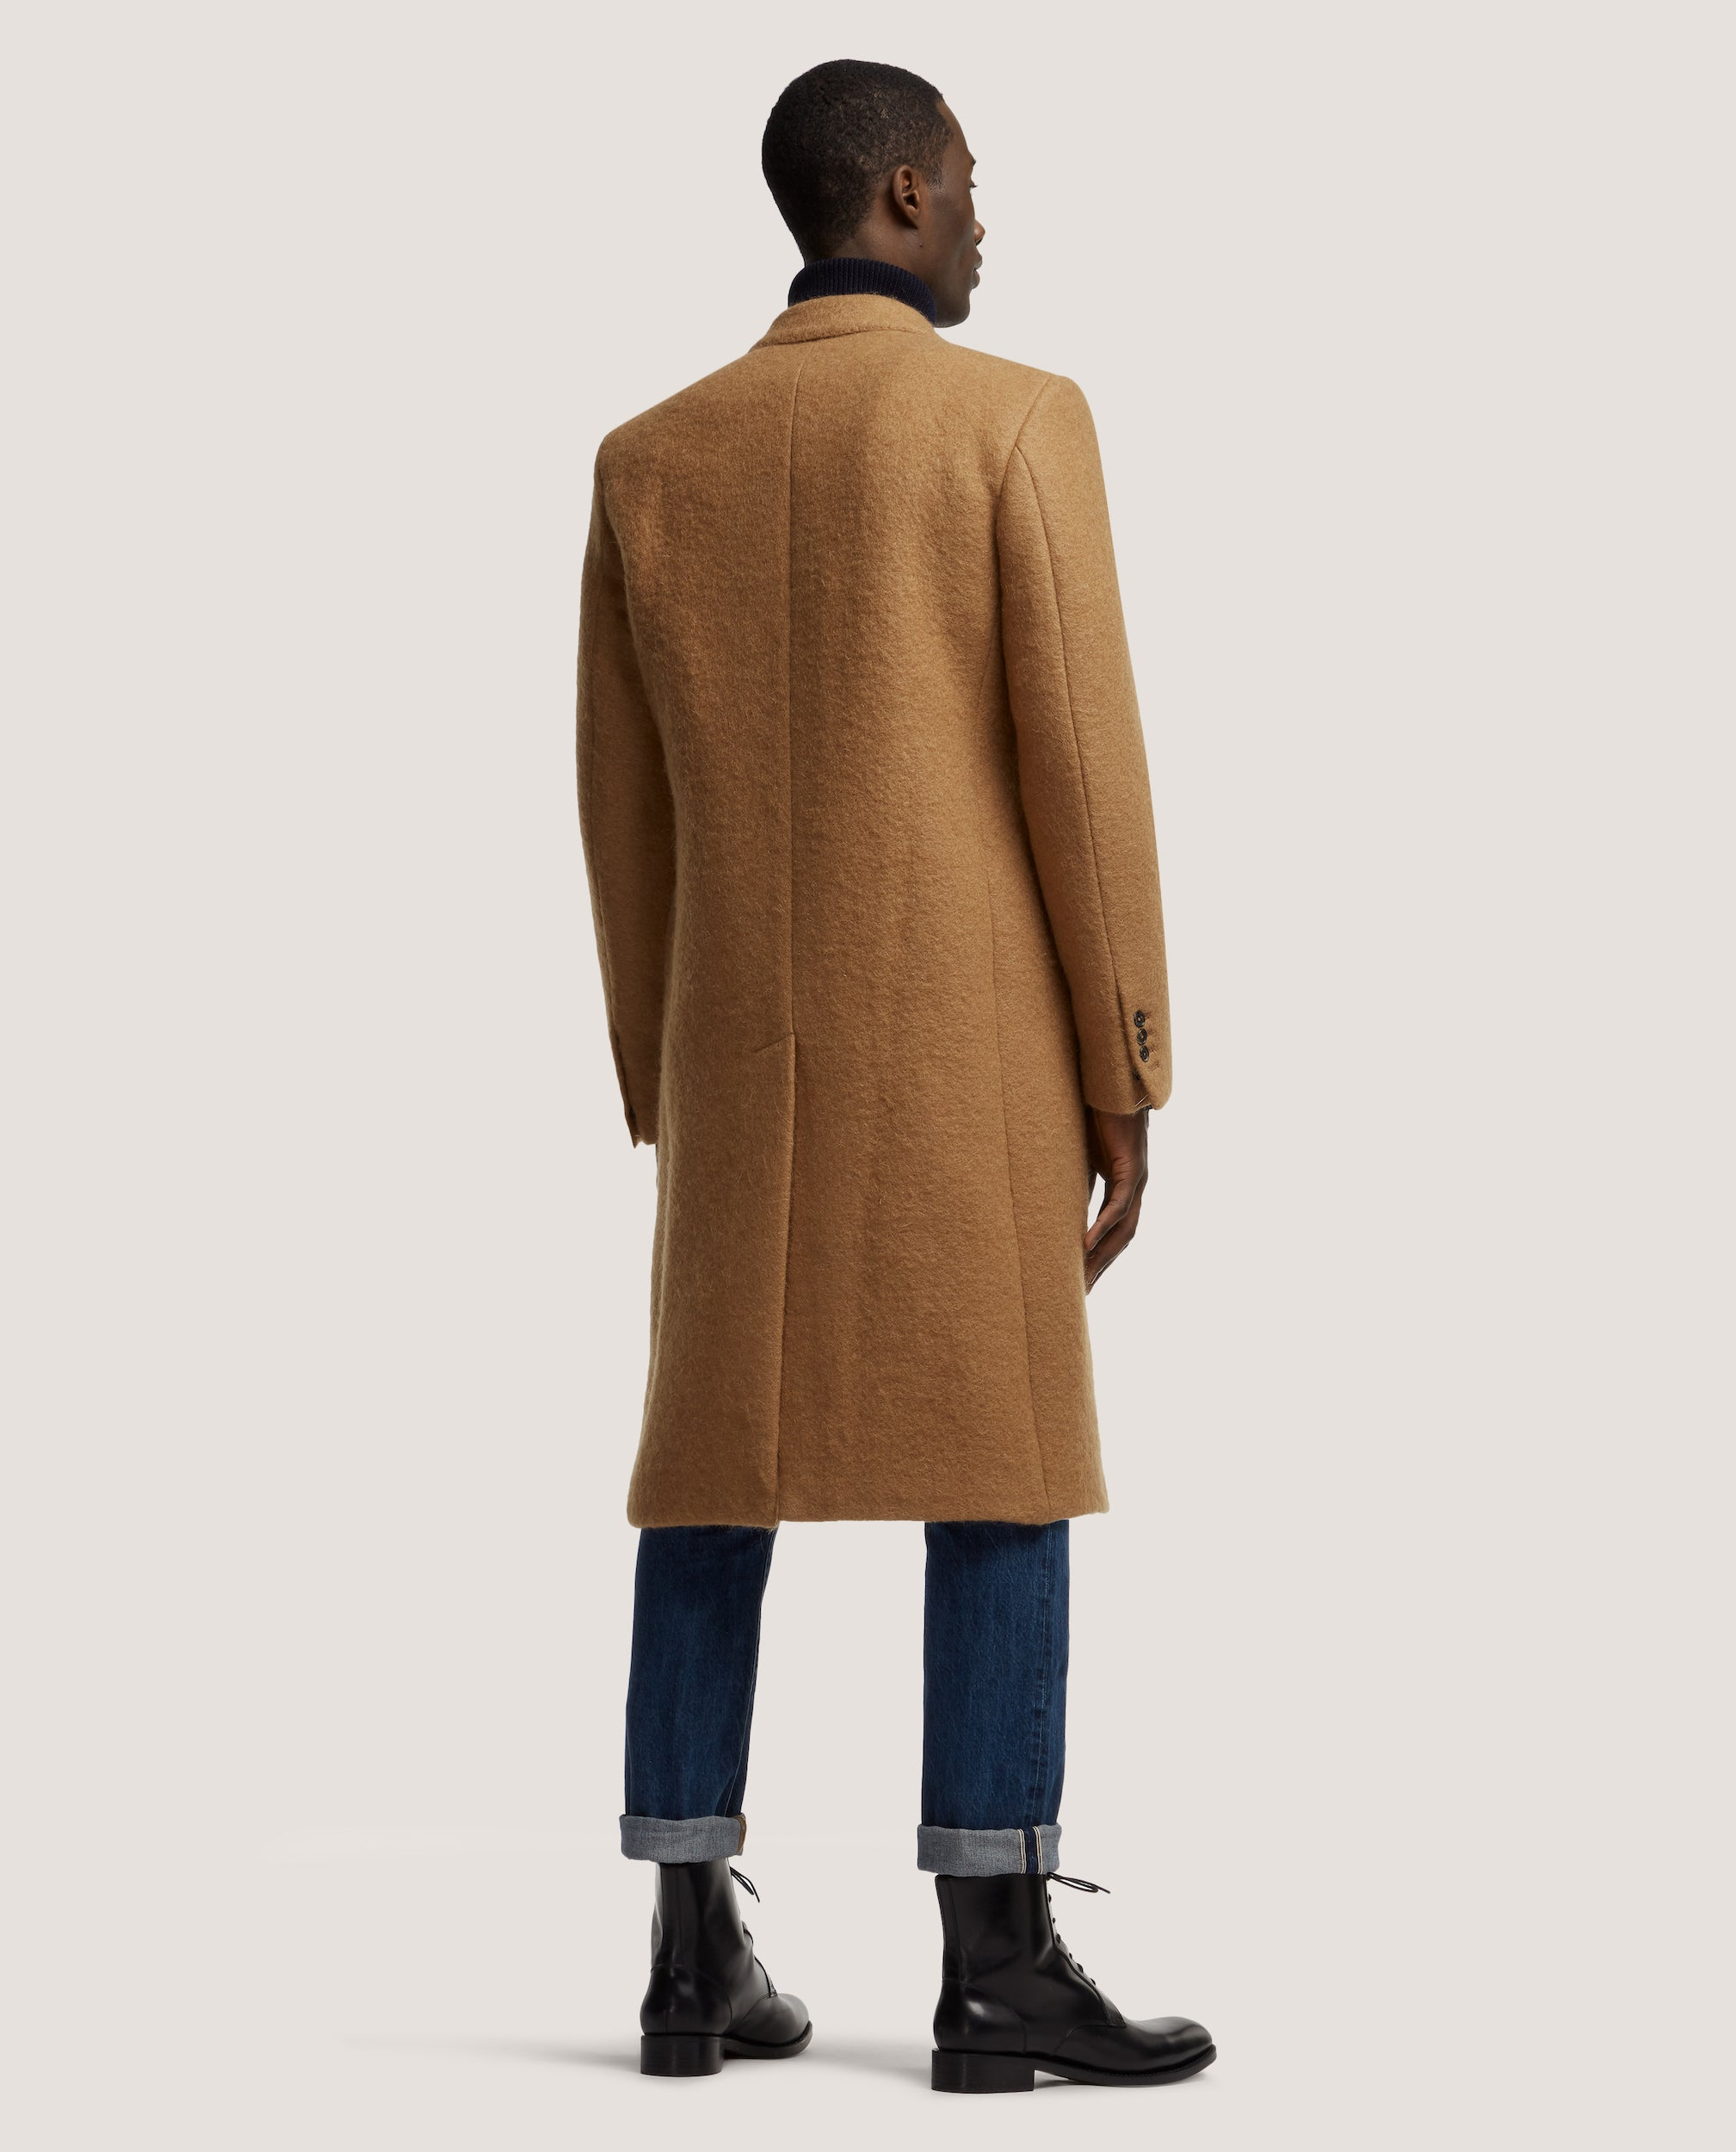 ALAIN Double breasted wool overcoat | Tan